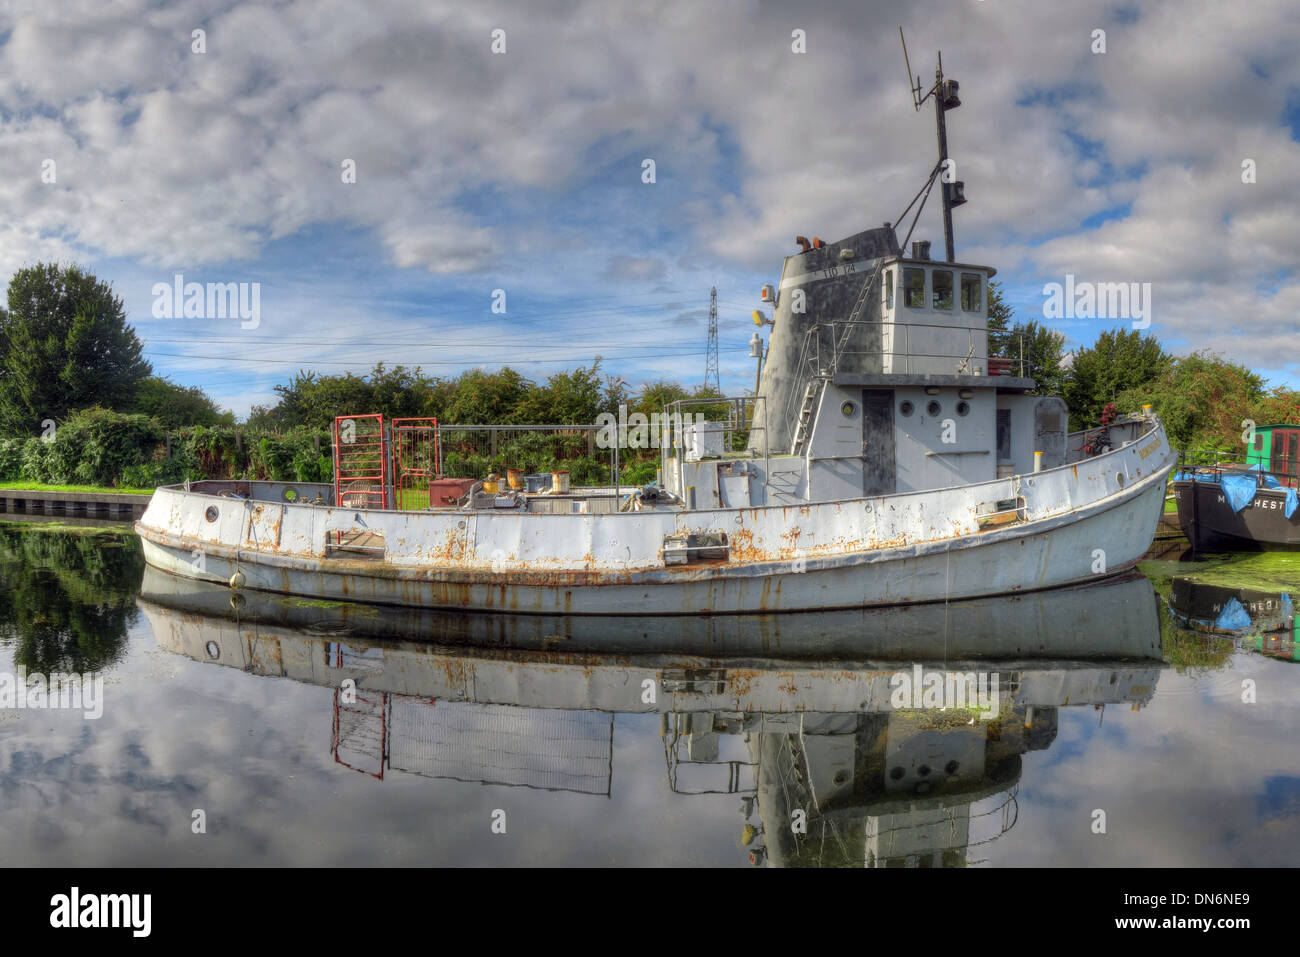 GB,Great,Britain,Boat,on,the,Sankey,Canal,Reflection,Warrington,Cheshire,England,UK,pano,panorama,wide,shot,widshot,summer,bright,day,Ferry,Tavern,marina,Mersey,safe,haven,safehaven,lock,gates,lockgates,gate,tidal,SCARS,waterway,waterways,restoration,quay,quays,club,pub,gray,ship,gotonysmith vision,Buy Pictures of,Buy Images Of